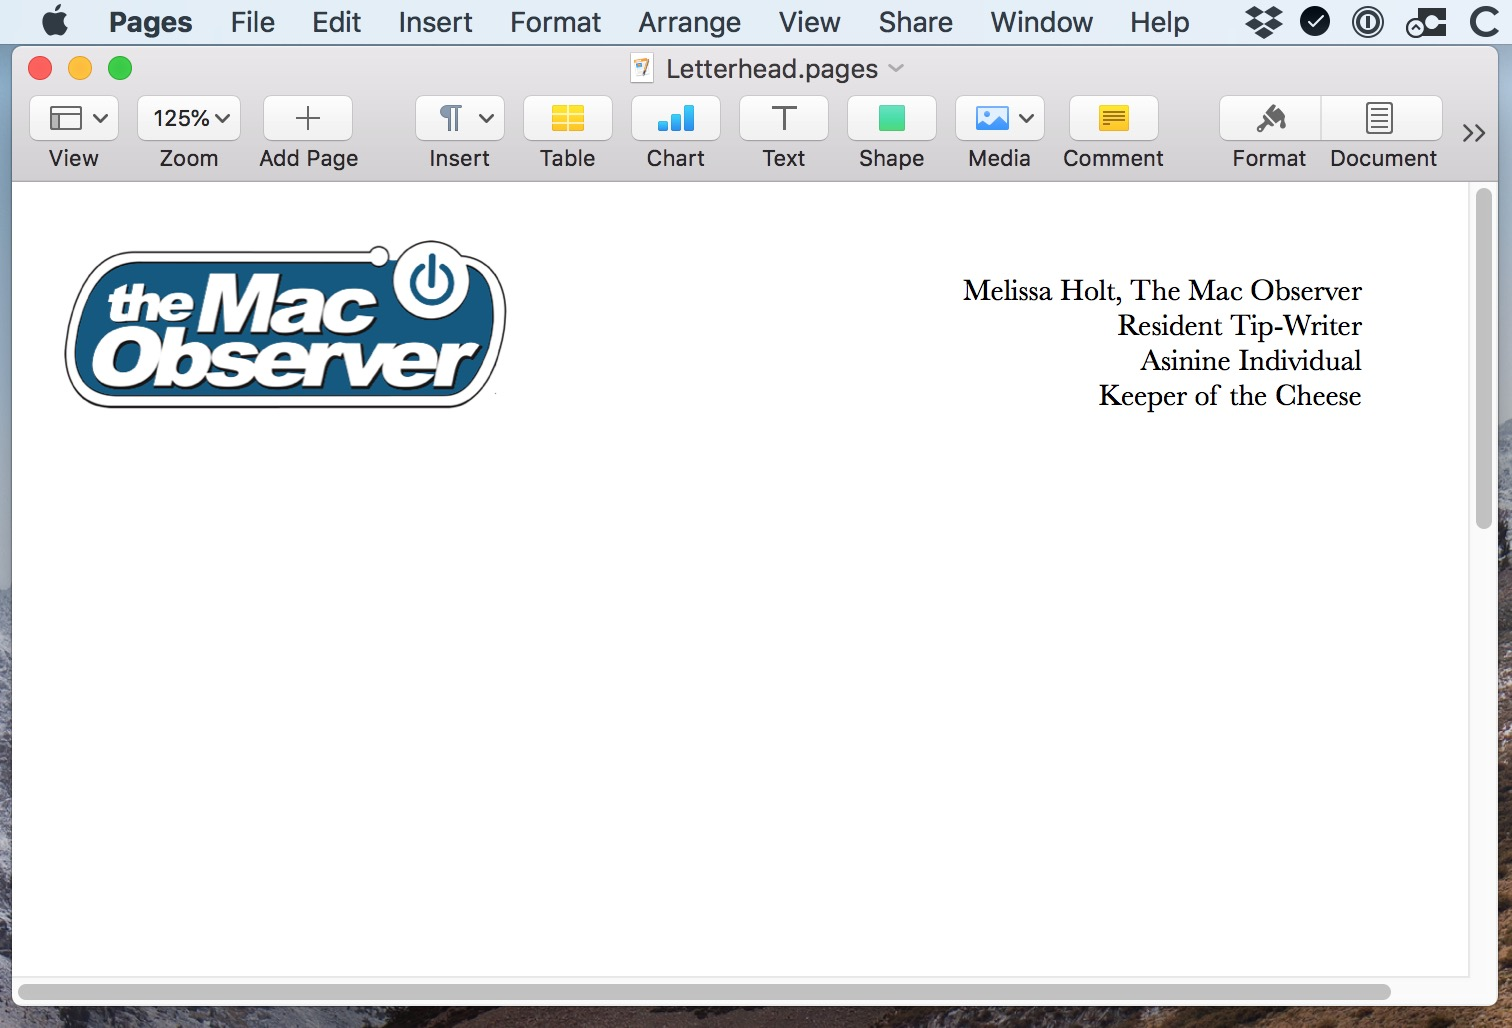 Letterhead document in Pages on the Mac